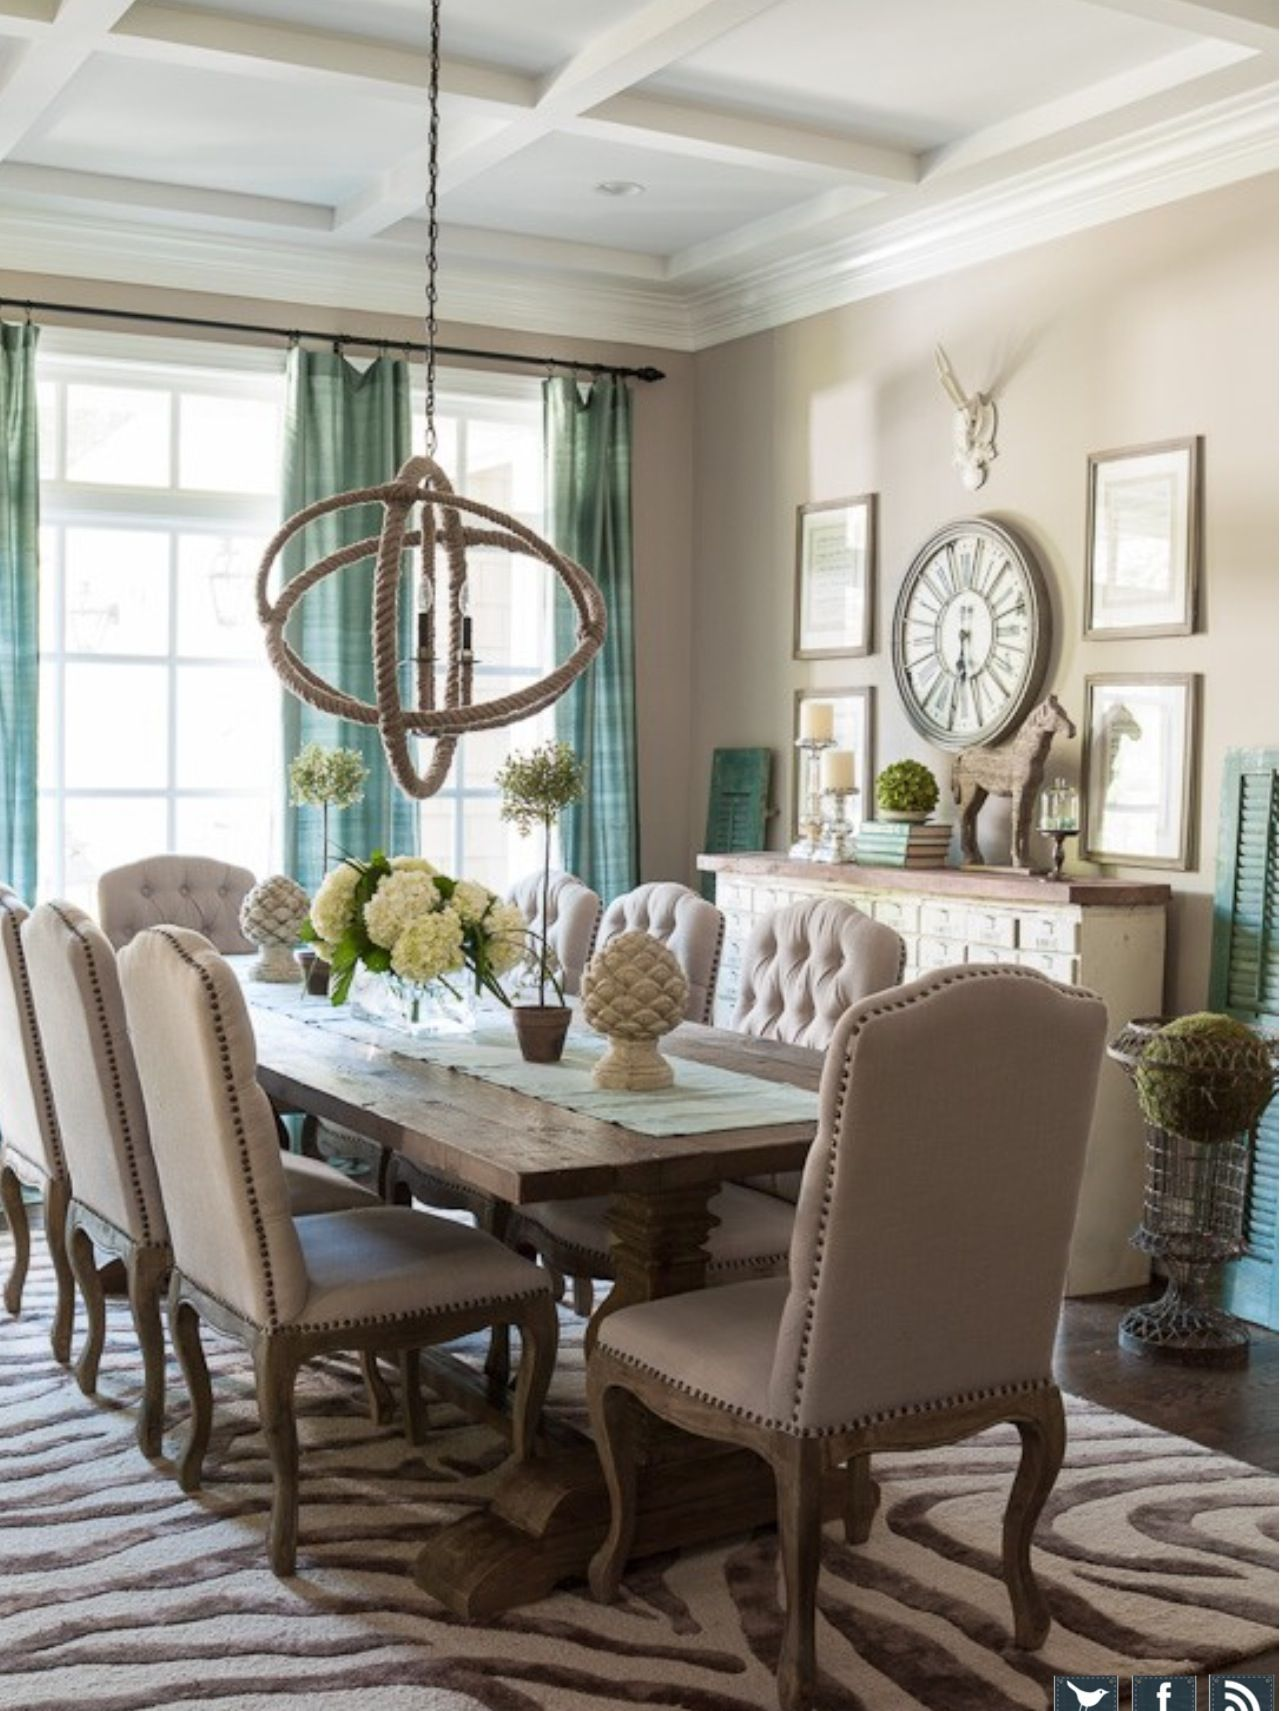 Love This For Our Dining Room When We Convert Our House  # Muebles Viu Comedores